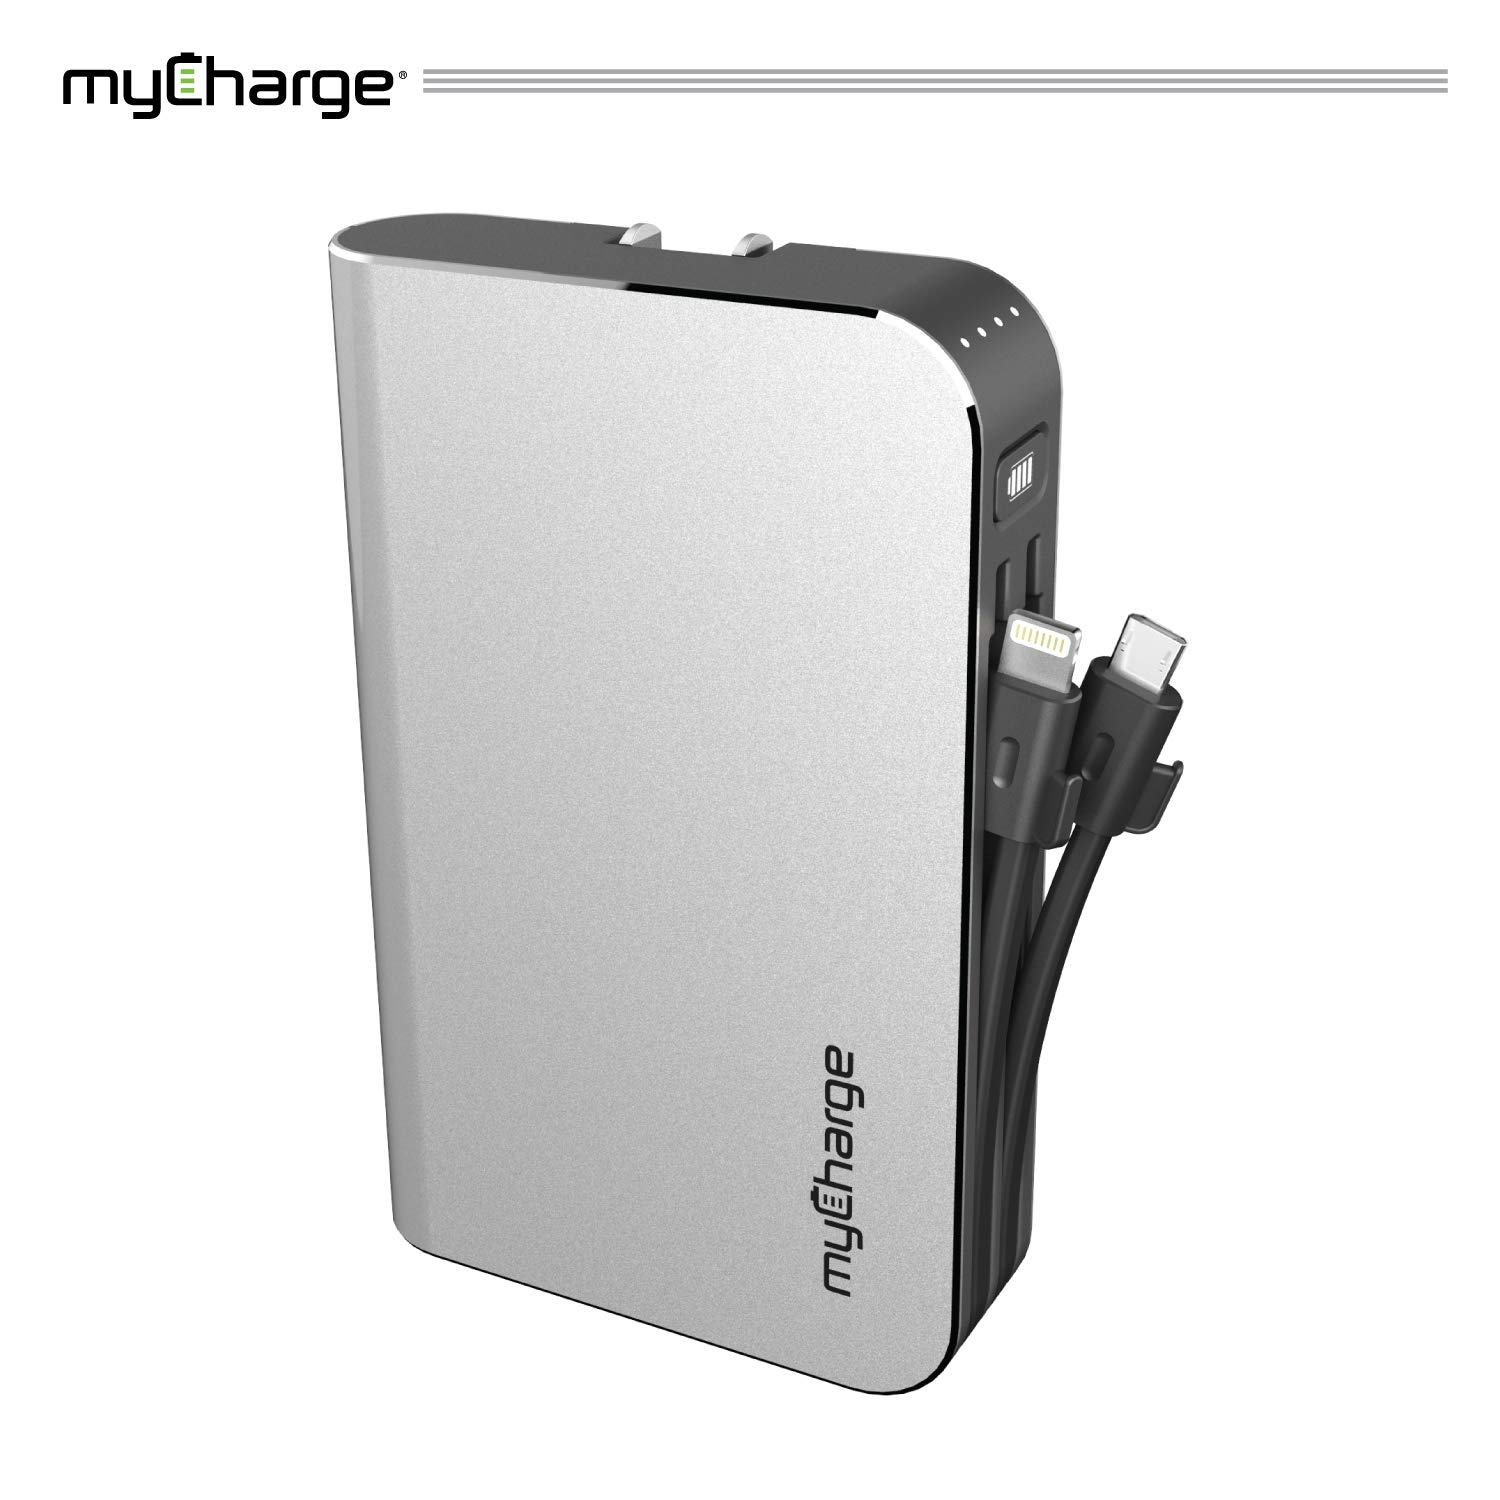 myCharge Portable Charger Power Bank - Hubmax 10050 mAh External Battery Pack | Wall Charger Foldable Plug | Built in Cables (Apple iPhone Charger ...